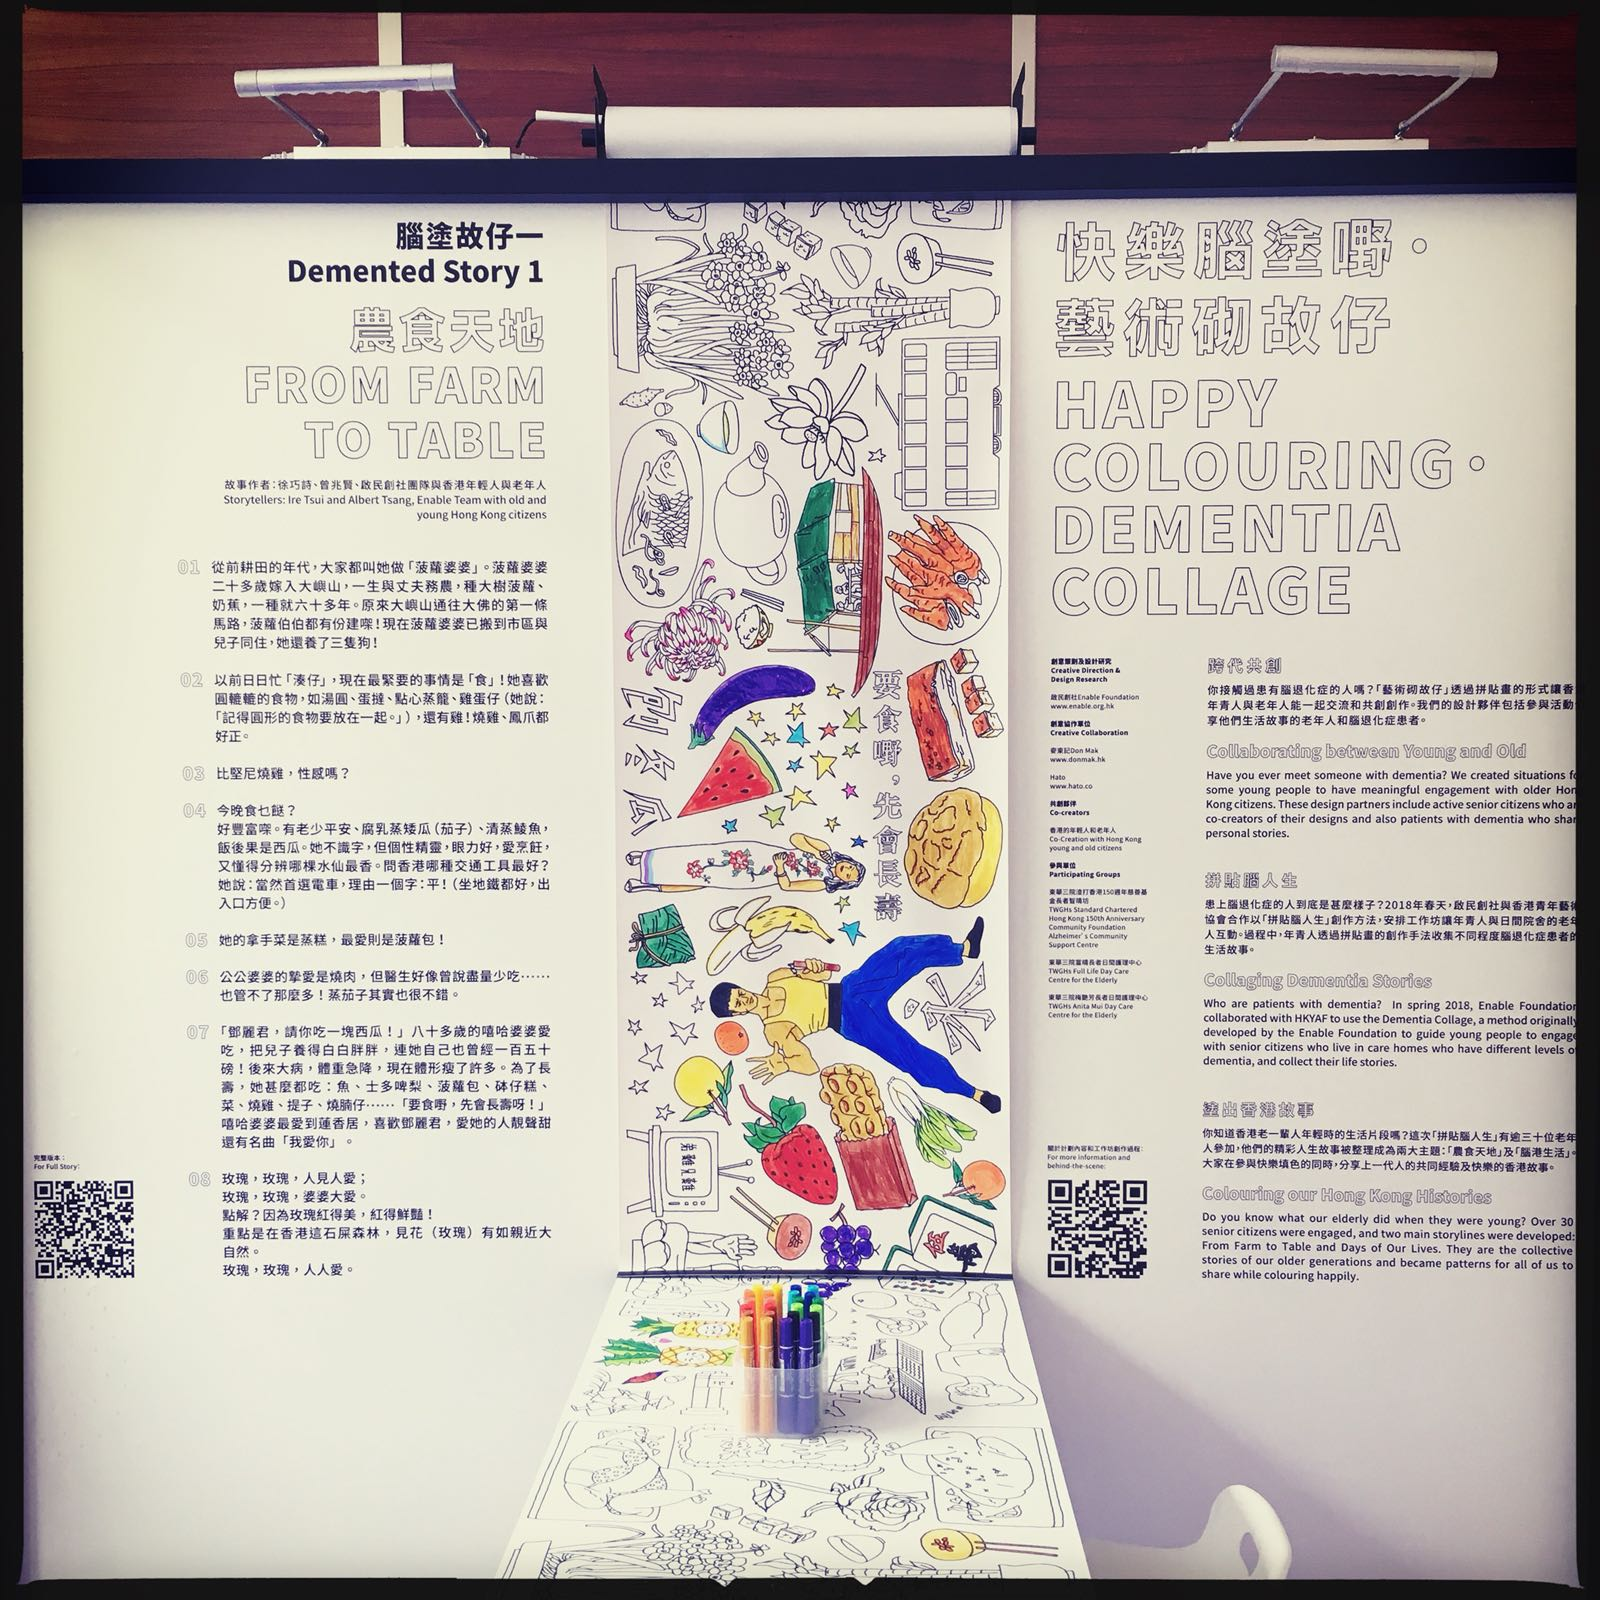 enablehappycolouring_exhibition12.jpeg